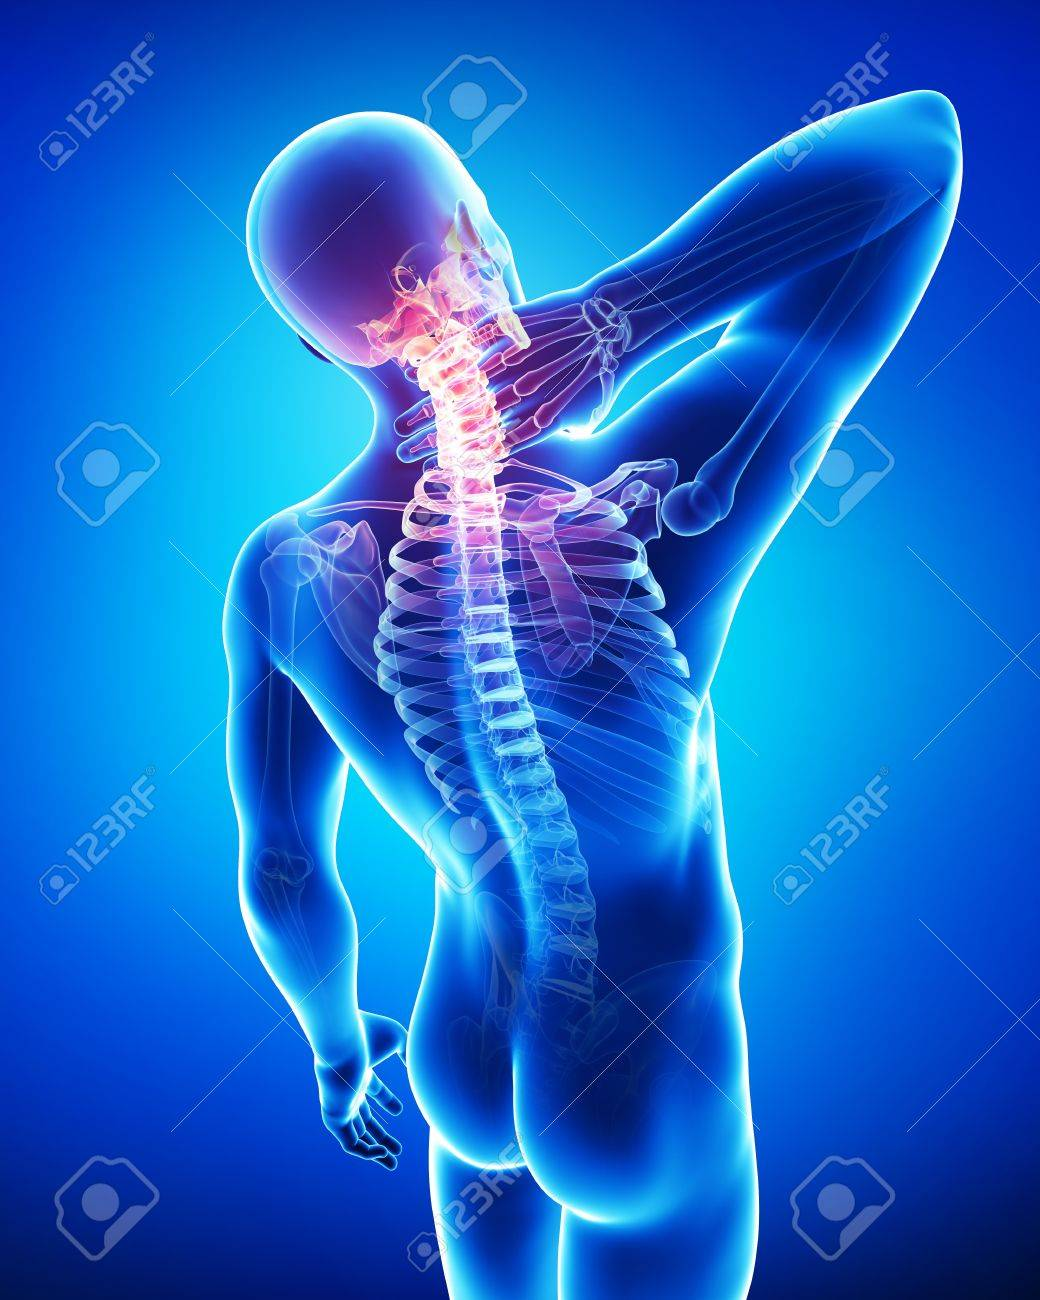 Anatomy Of Neck Pain Stock Photo, Picture And Royalty Free Image ...